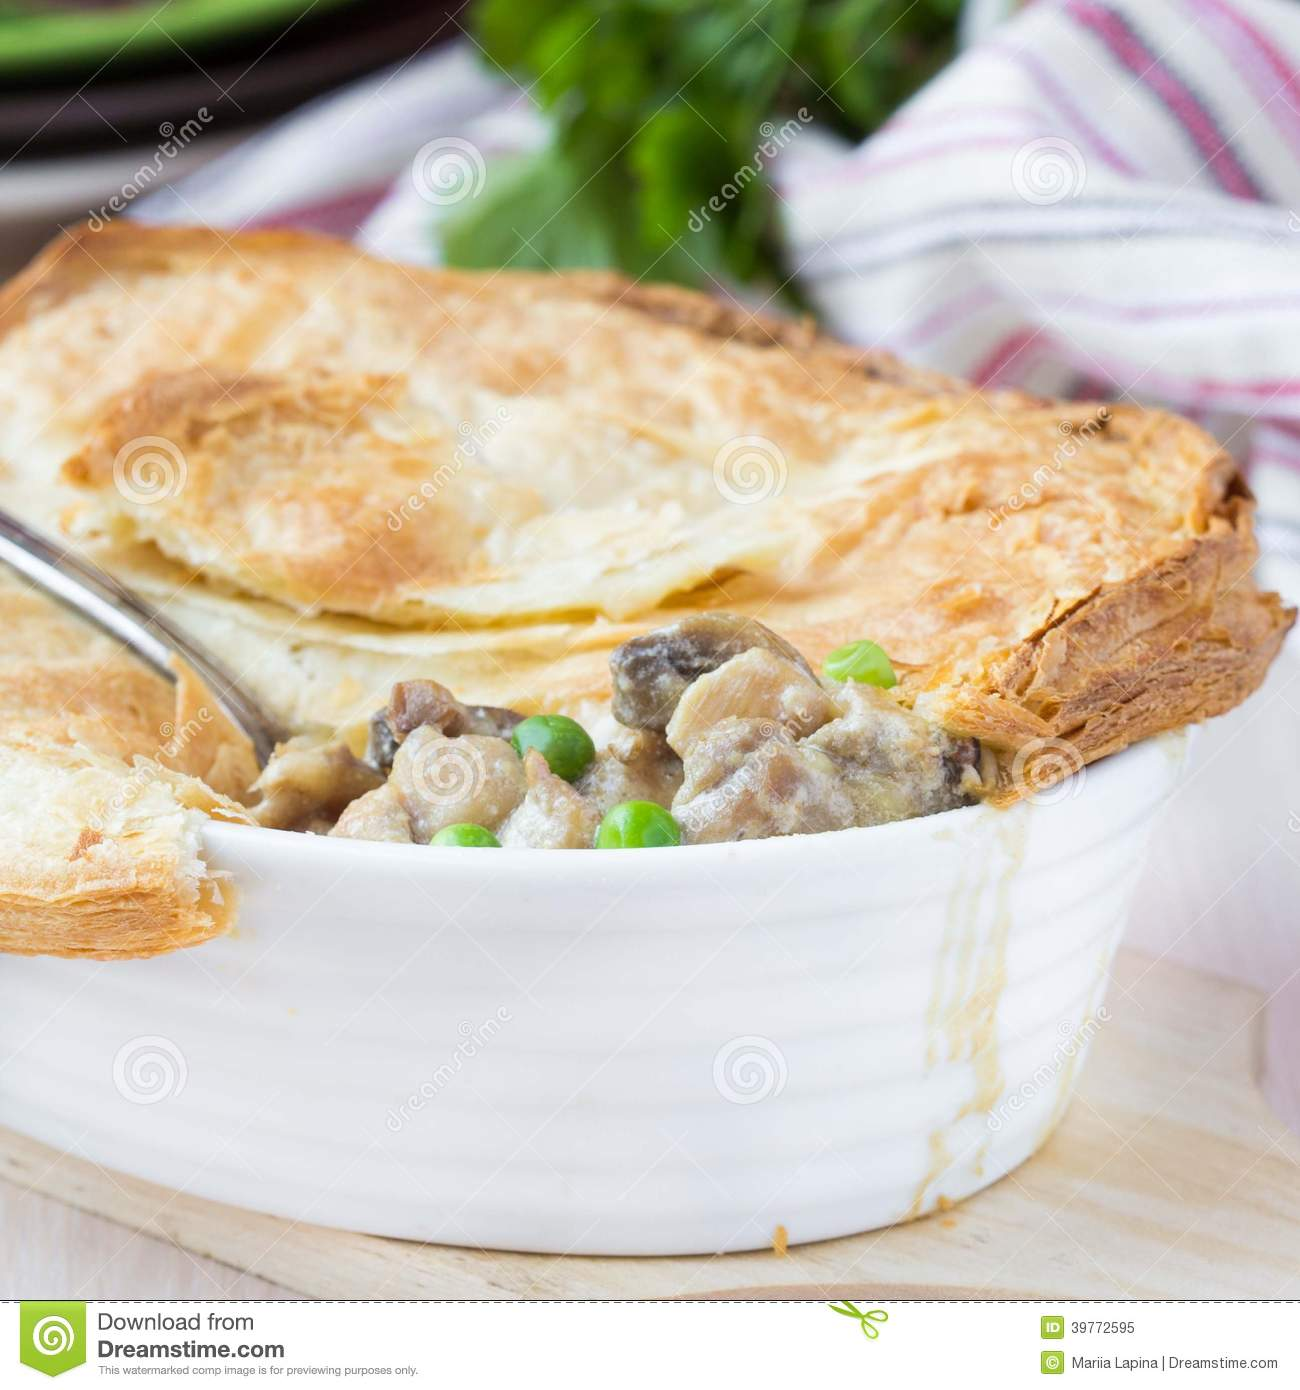 how to use puff pastry in meat pies